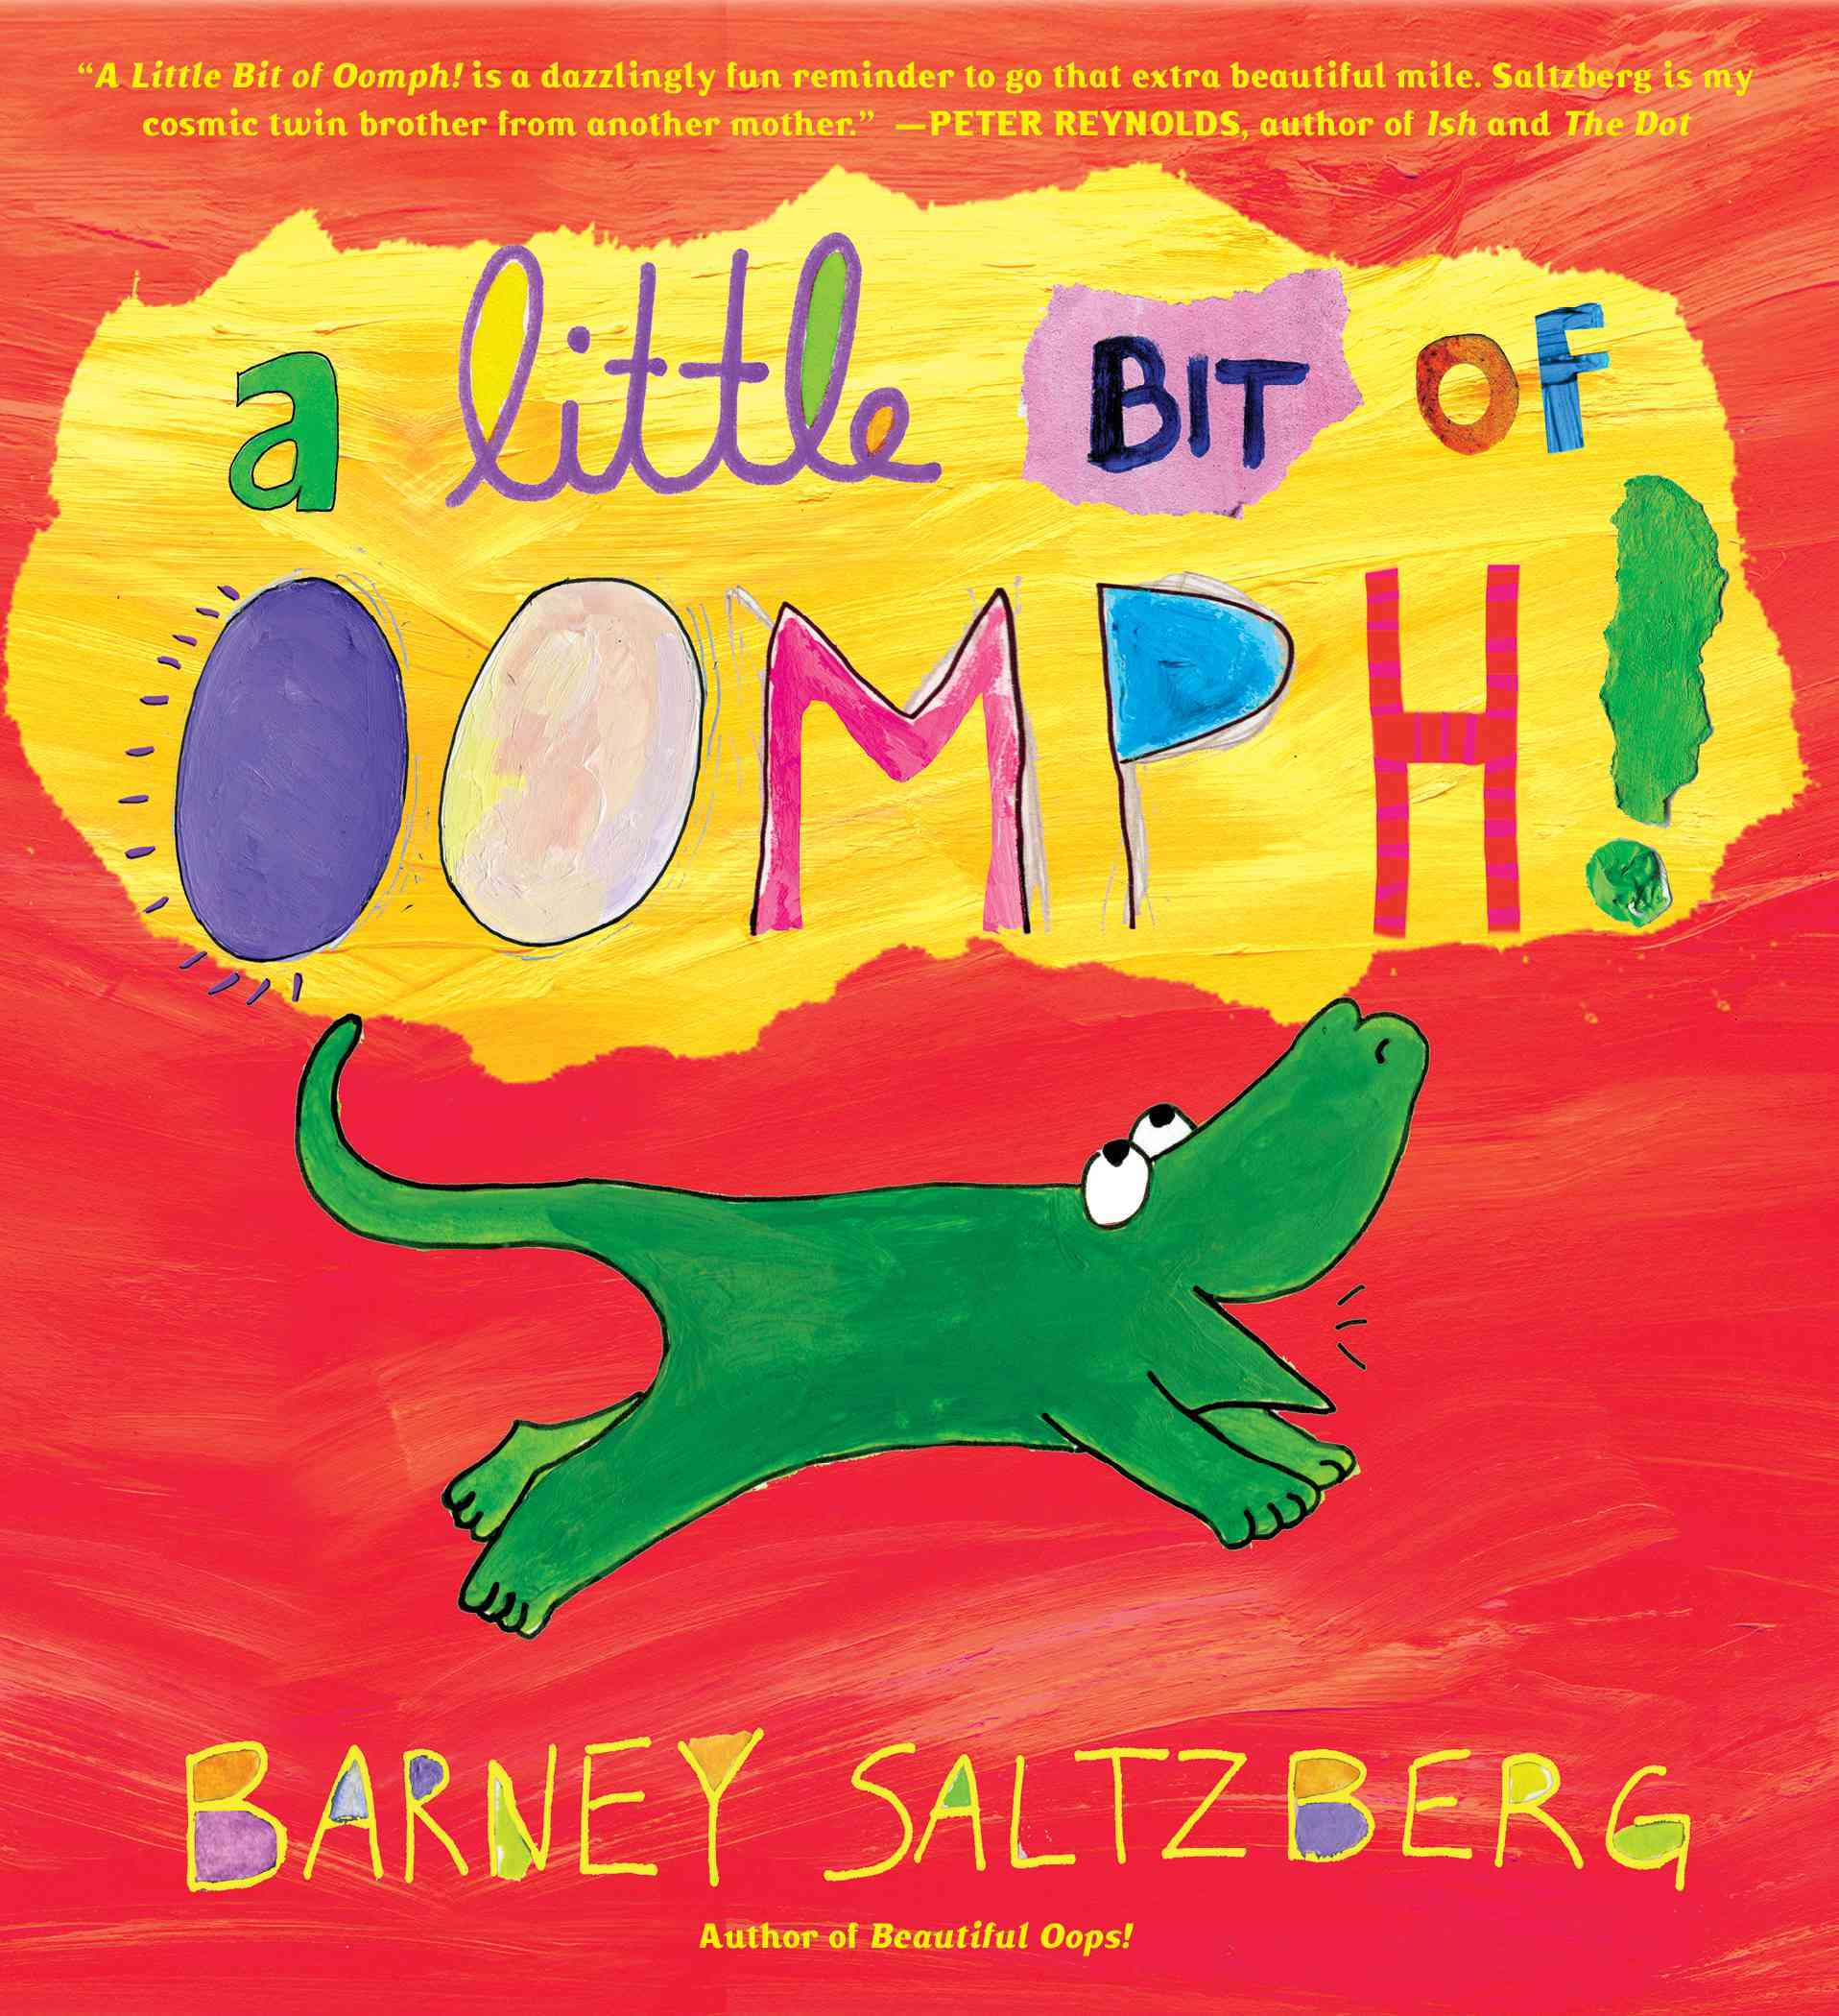 A Little Bit of Oomph! (Hardcover)